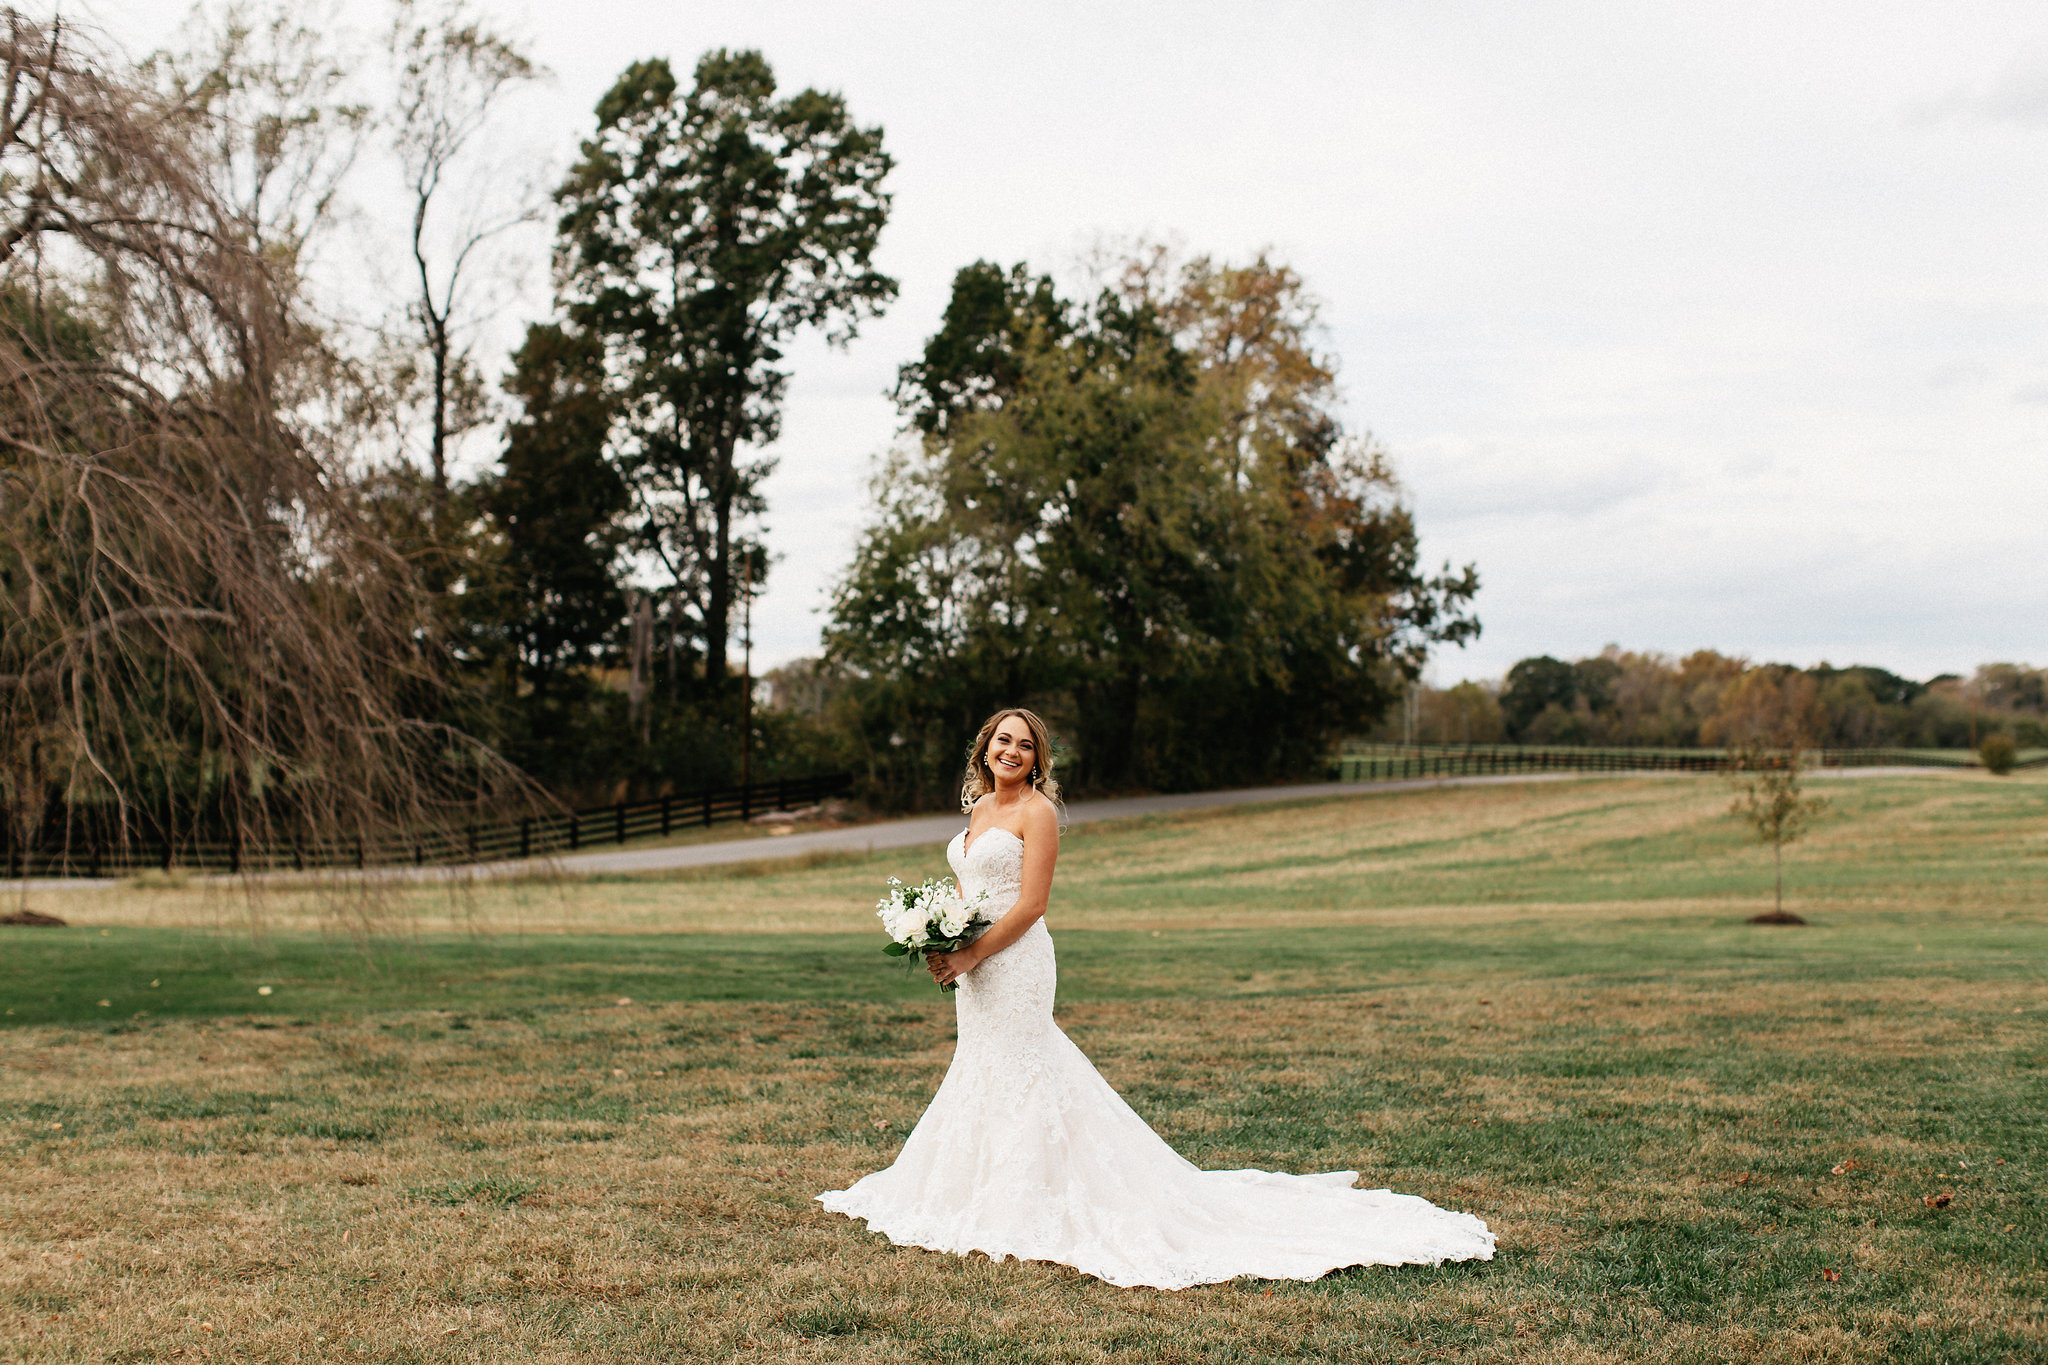 Ashley&NathanMarried2017-11-10at19.26.47PM51.jpg